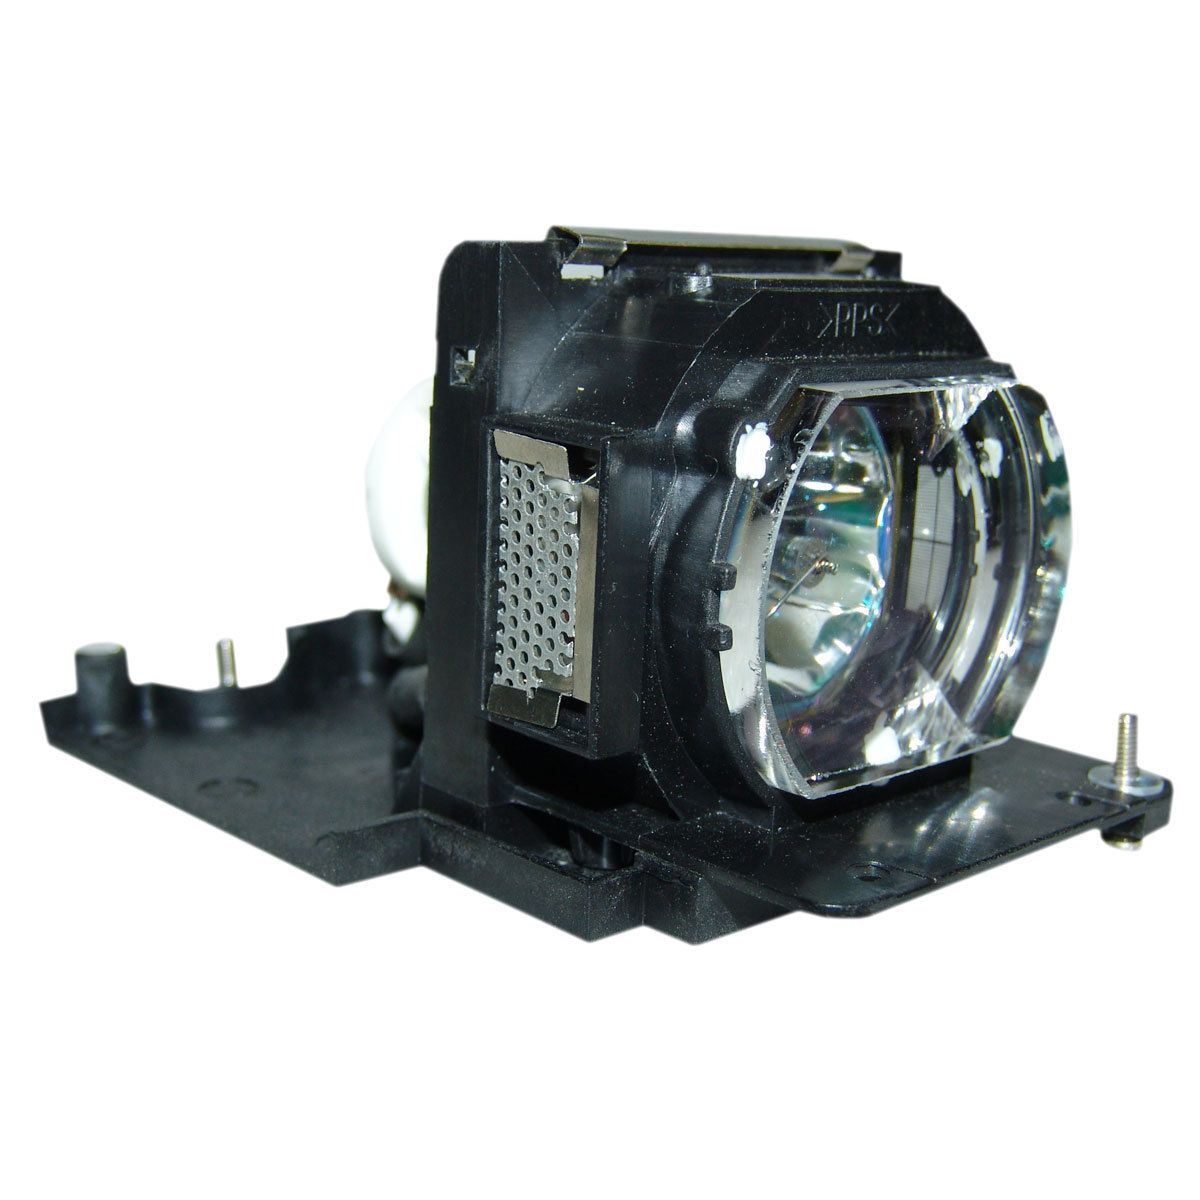 Primary image for Geha 60-272804 Compatible Projector Lamp Module